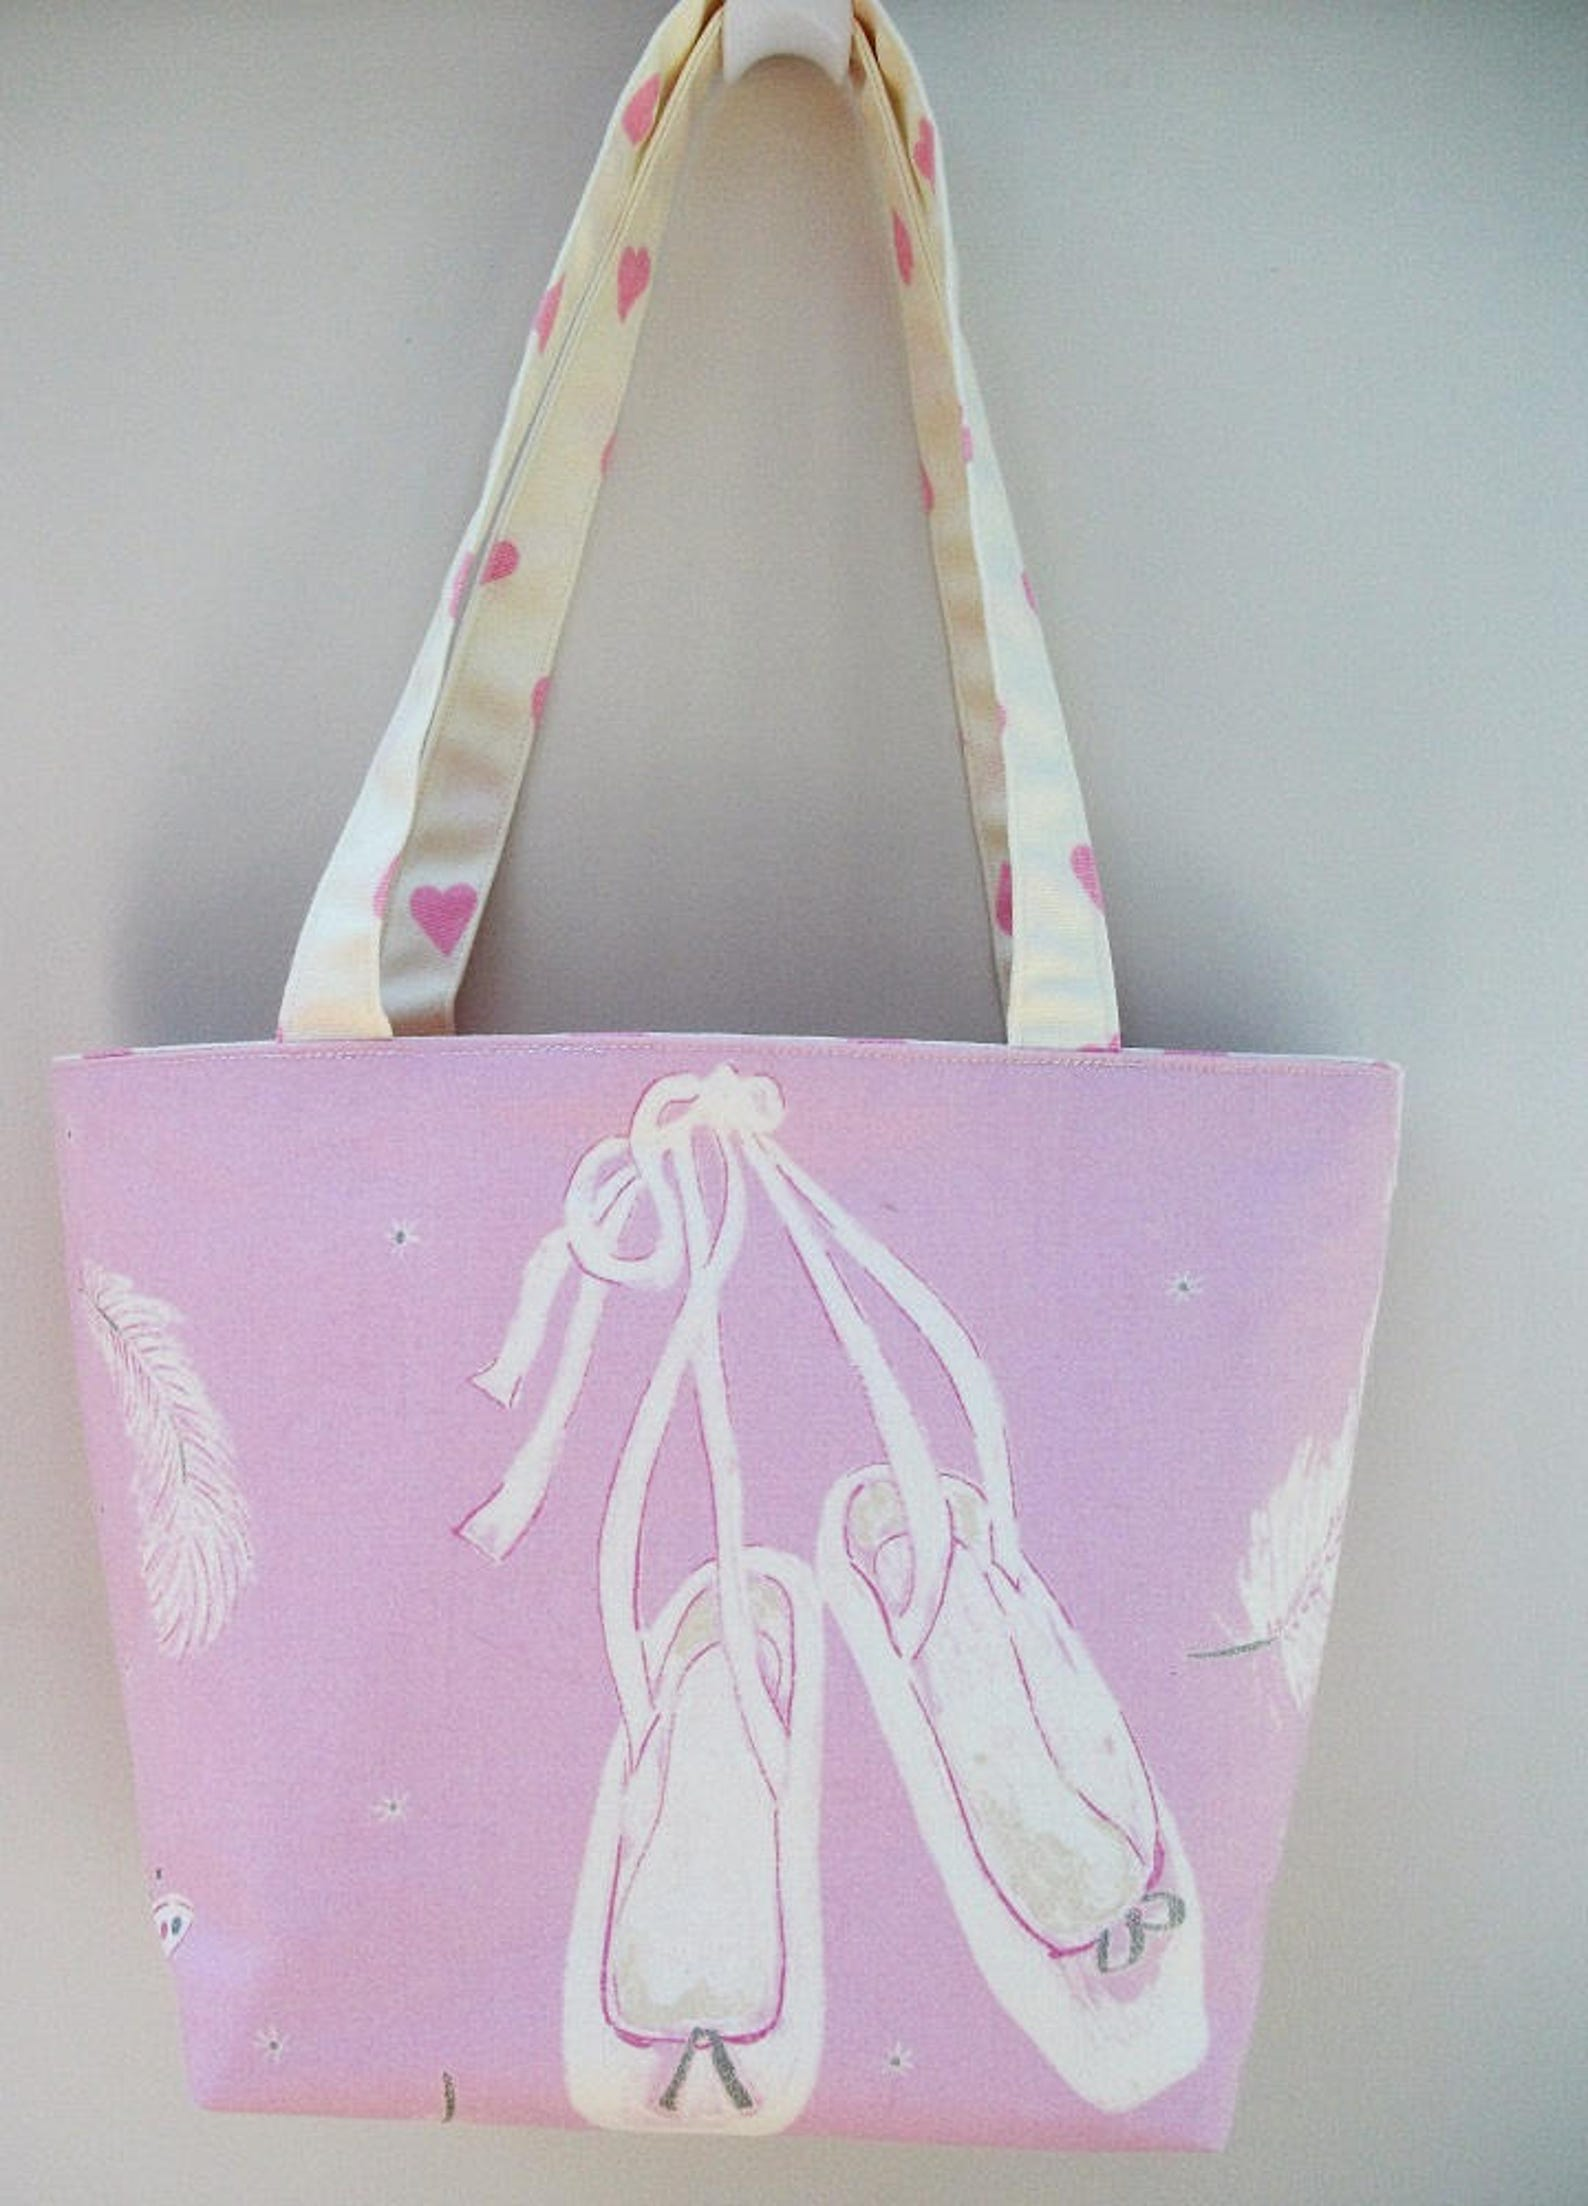 swan lake ballerina tote bag, ballet themed tote bag, ballet bag, ballet gift, gift for her, gift for ballerina, long handled to